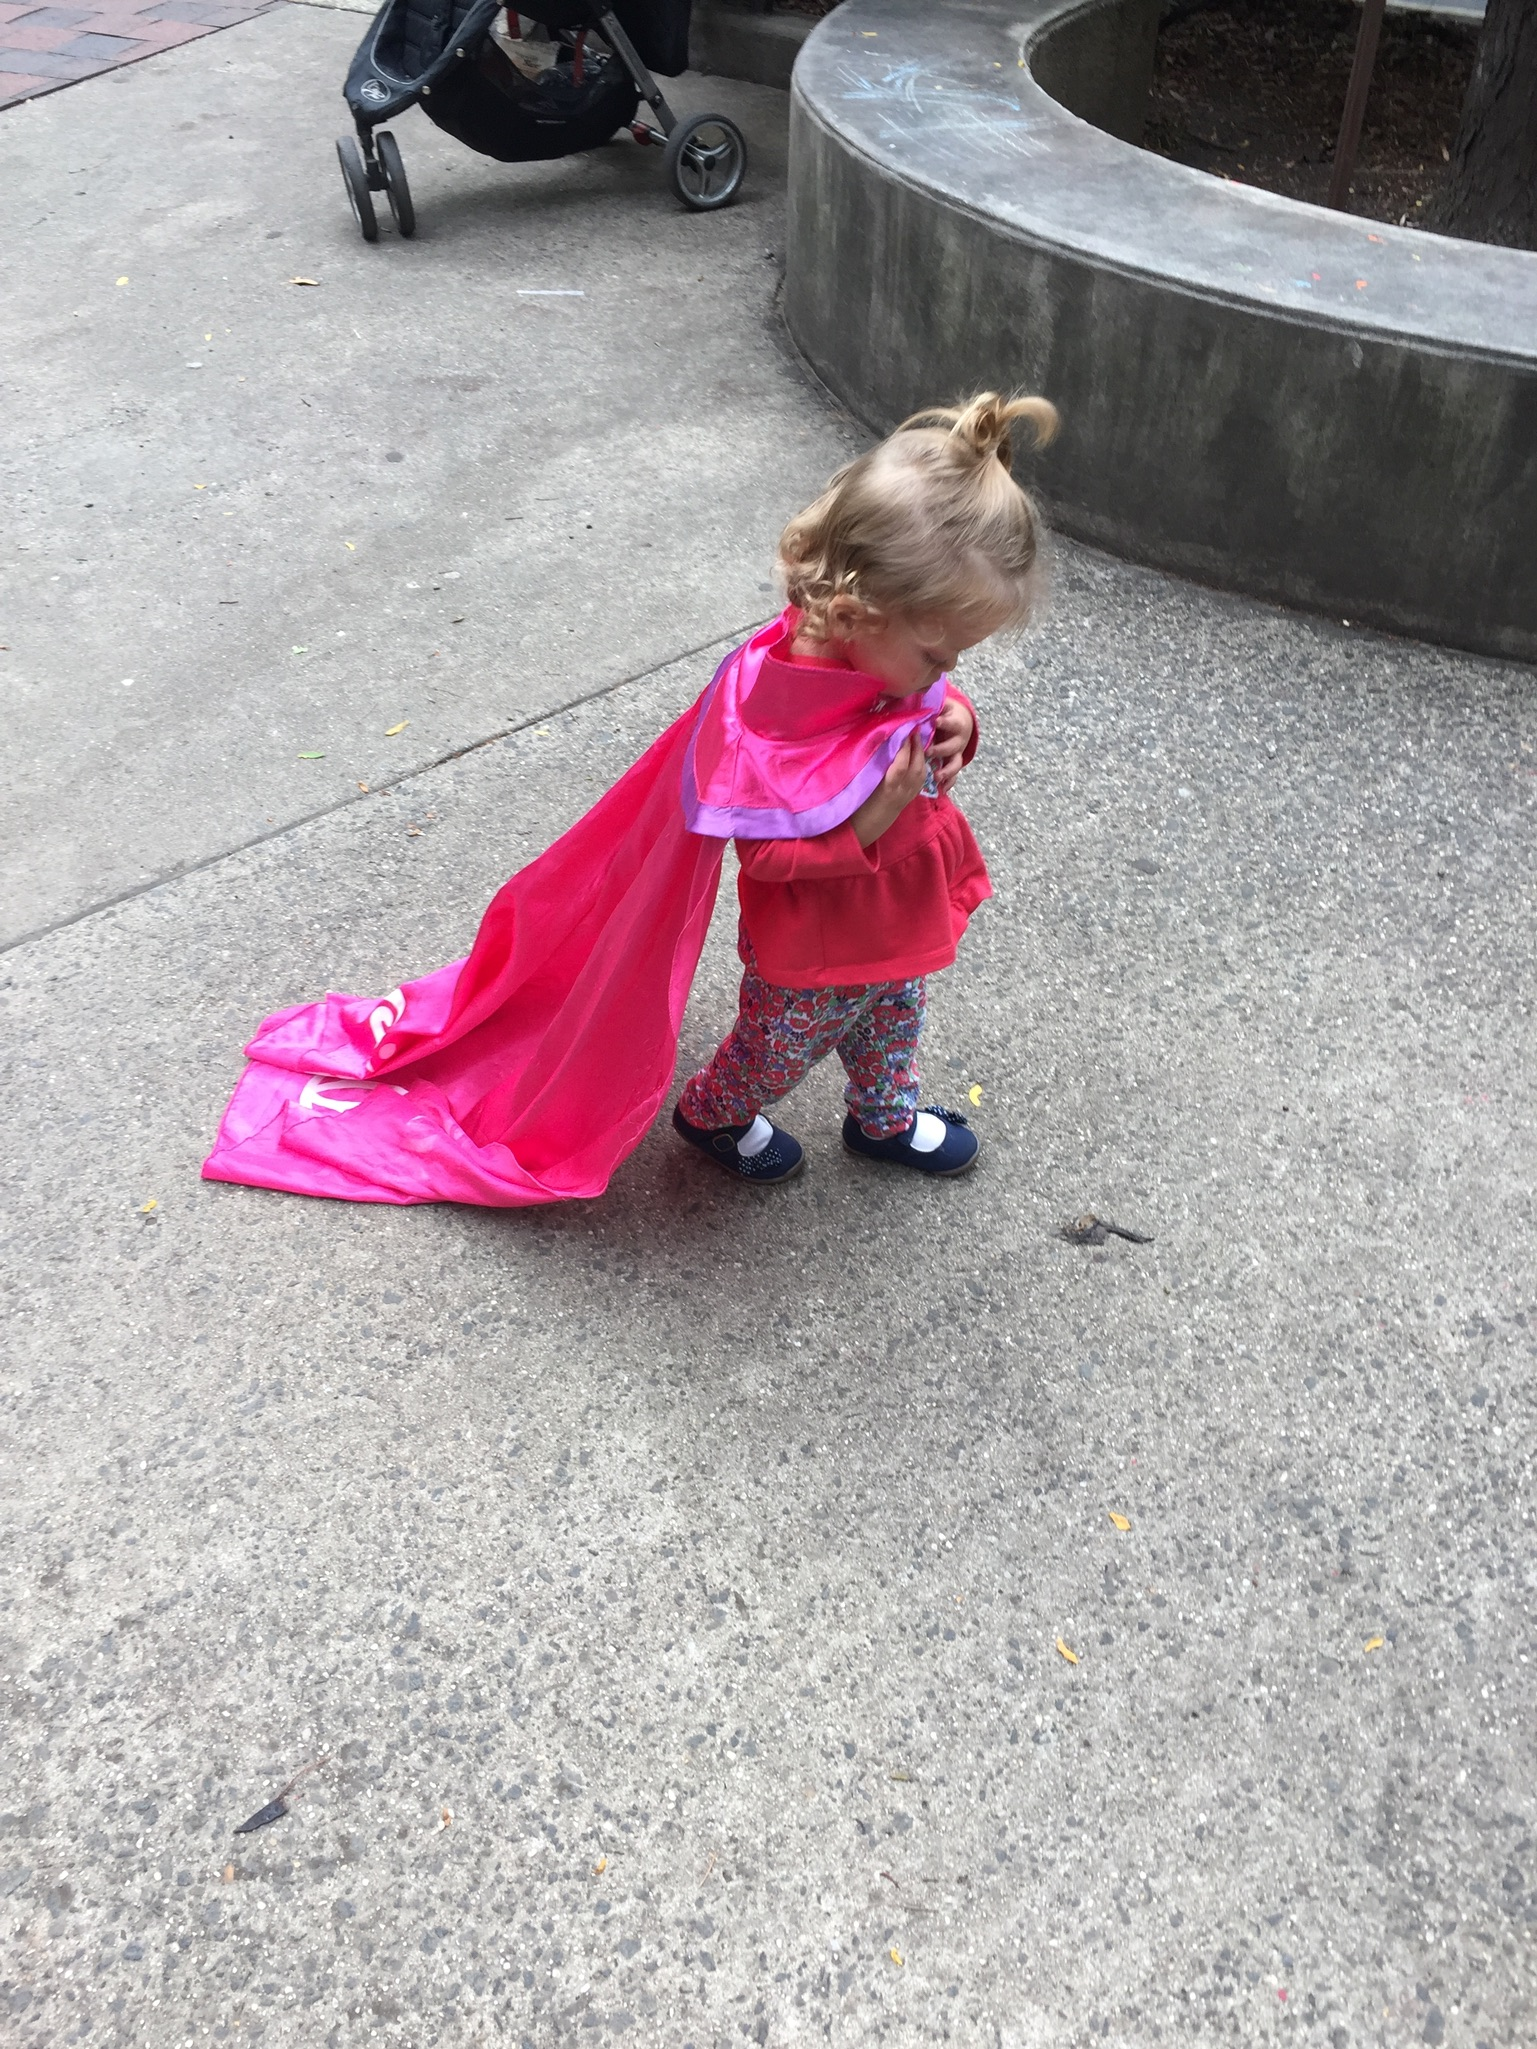 Lucie playing at our neighborhood playground. She made a friend who gave her an Anna cape from Frozen to play with for a bit.